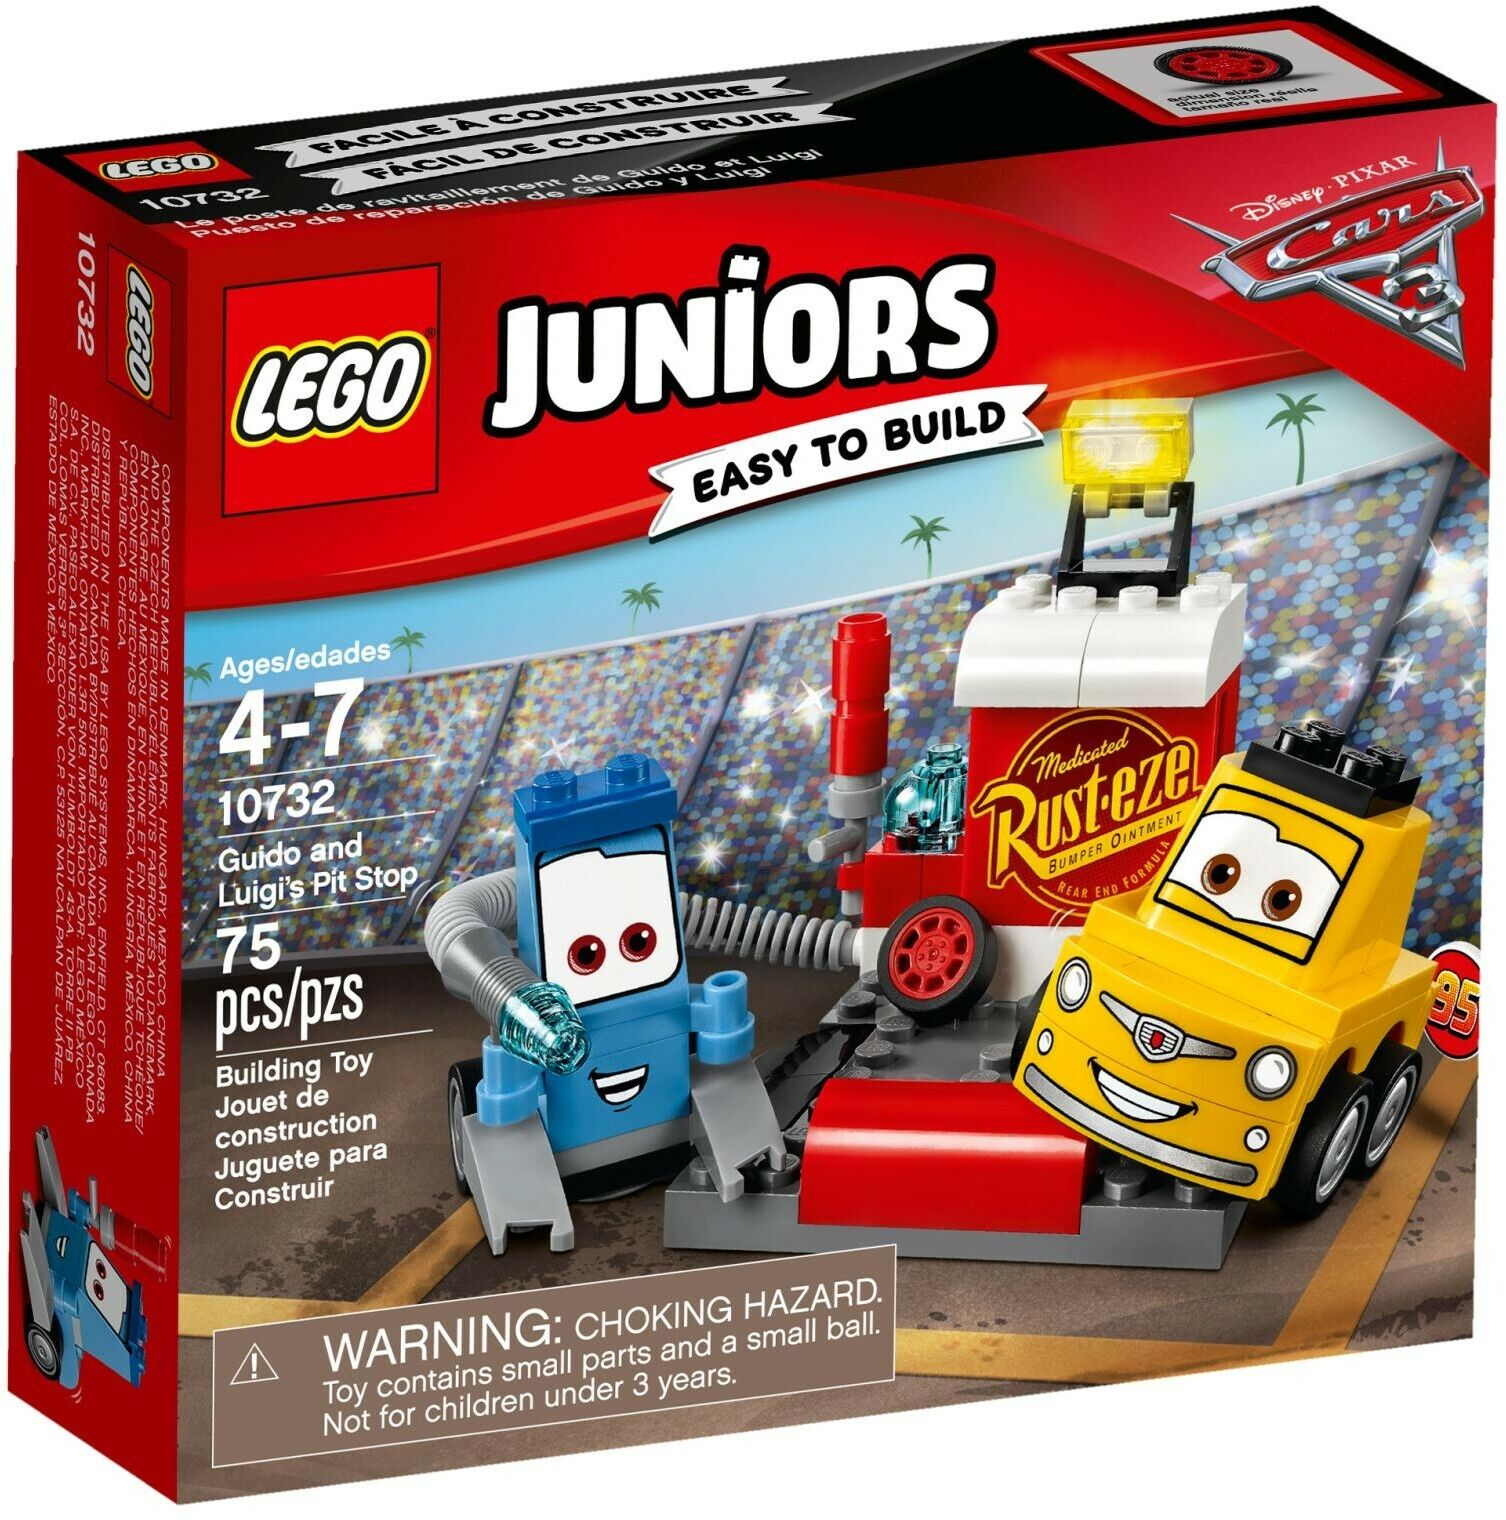 LEGO Juniors - Guido and Luigi's Pit Stop Building Play Set